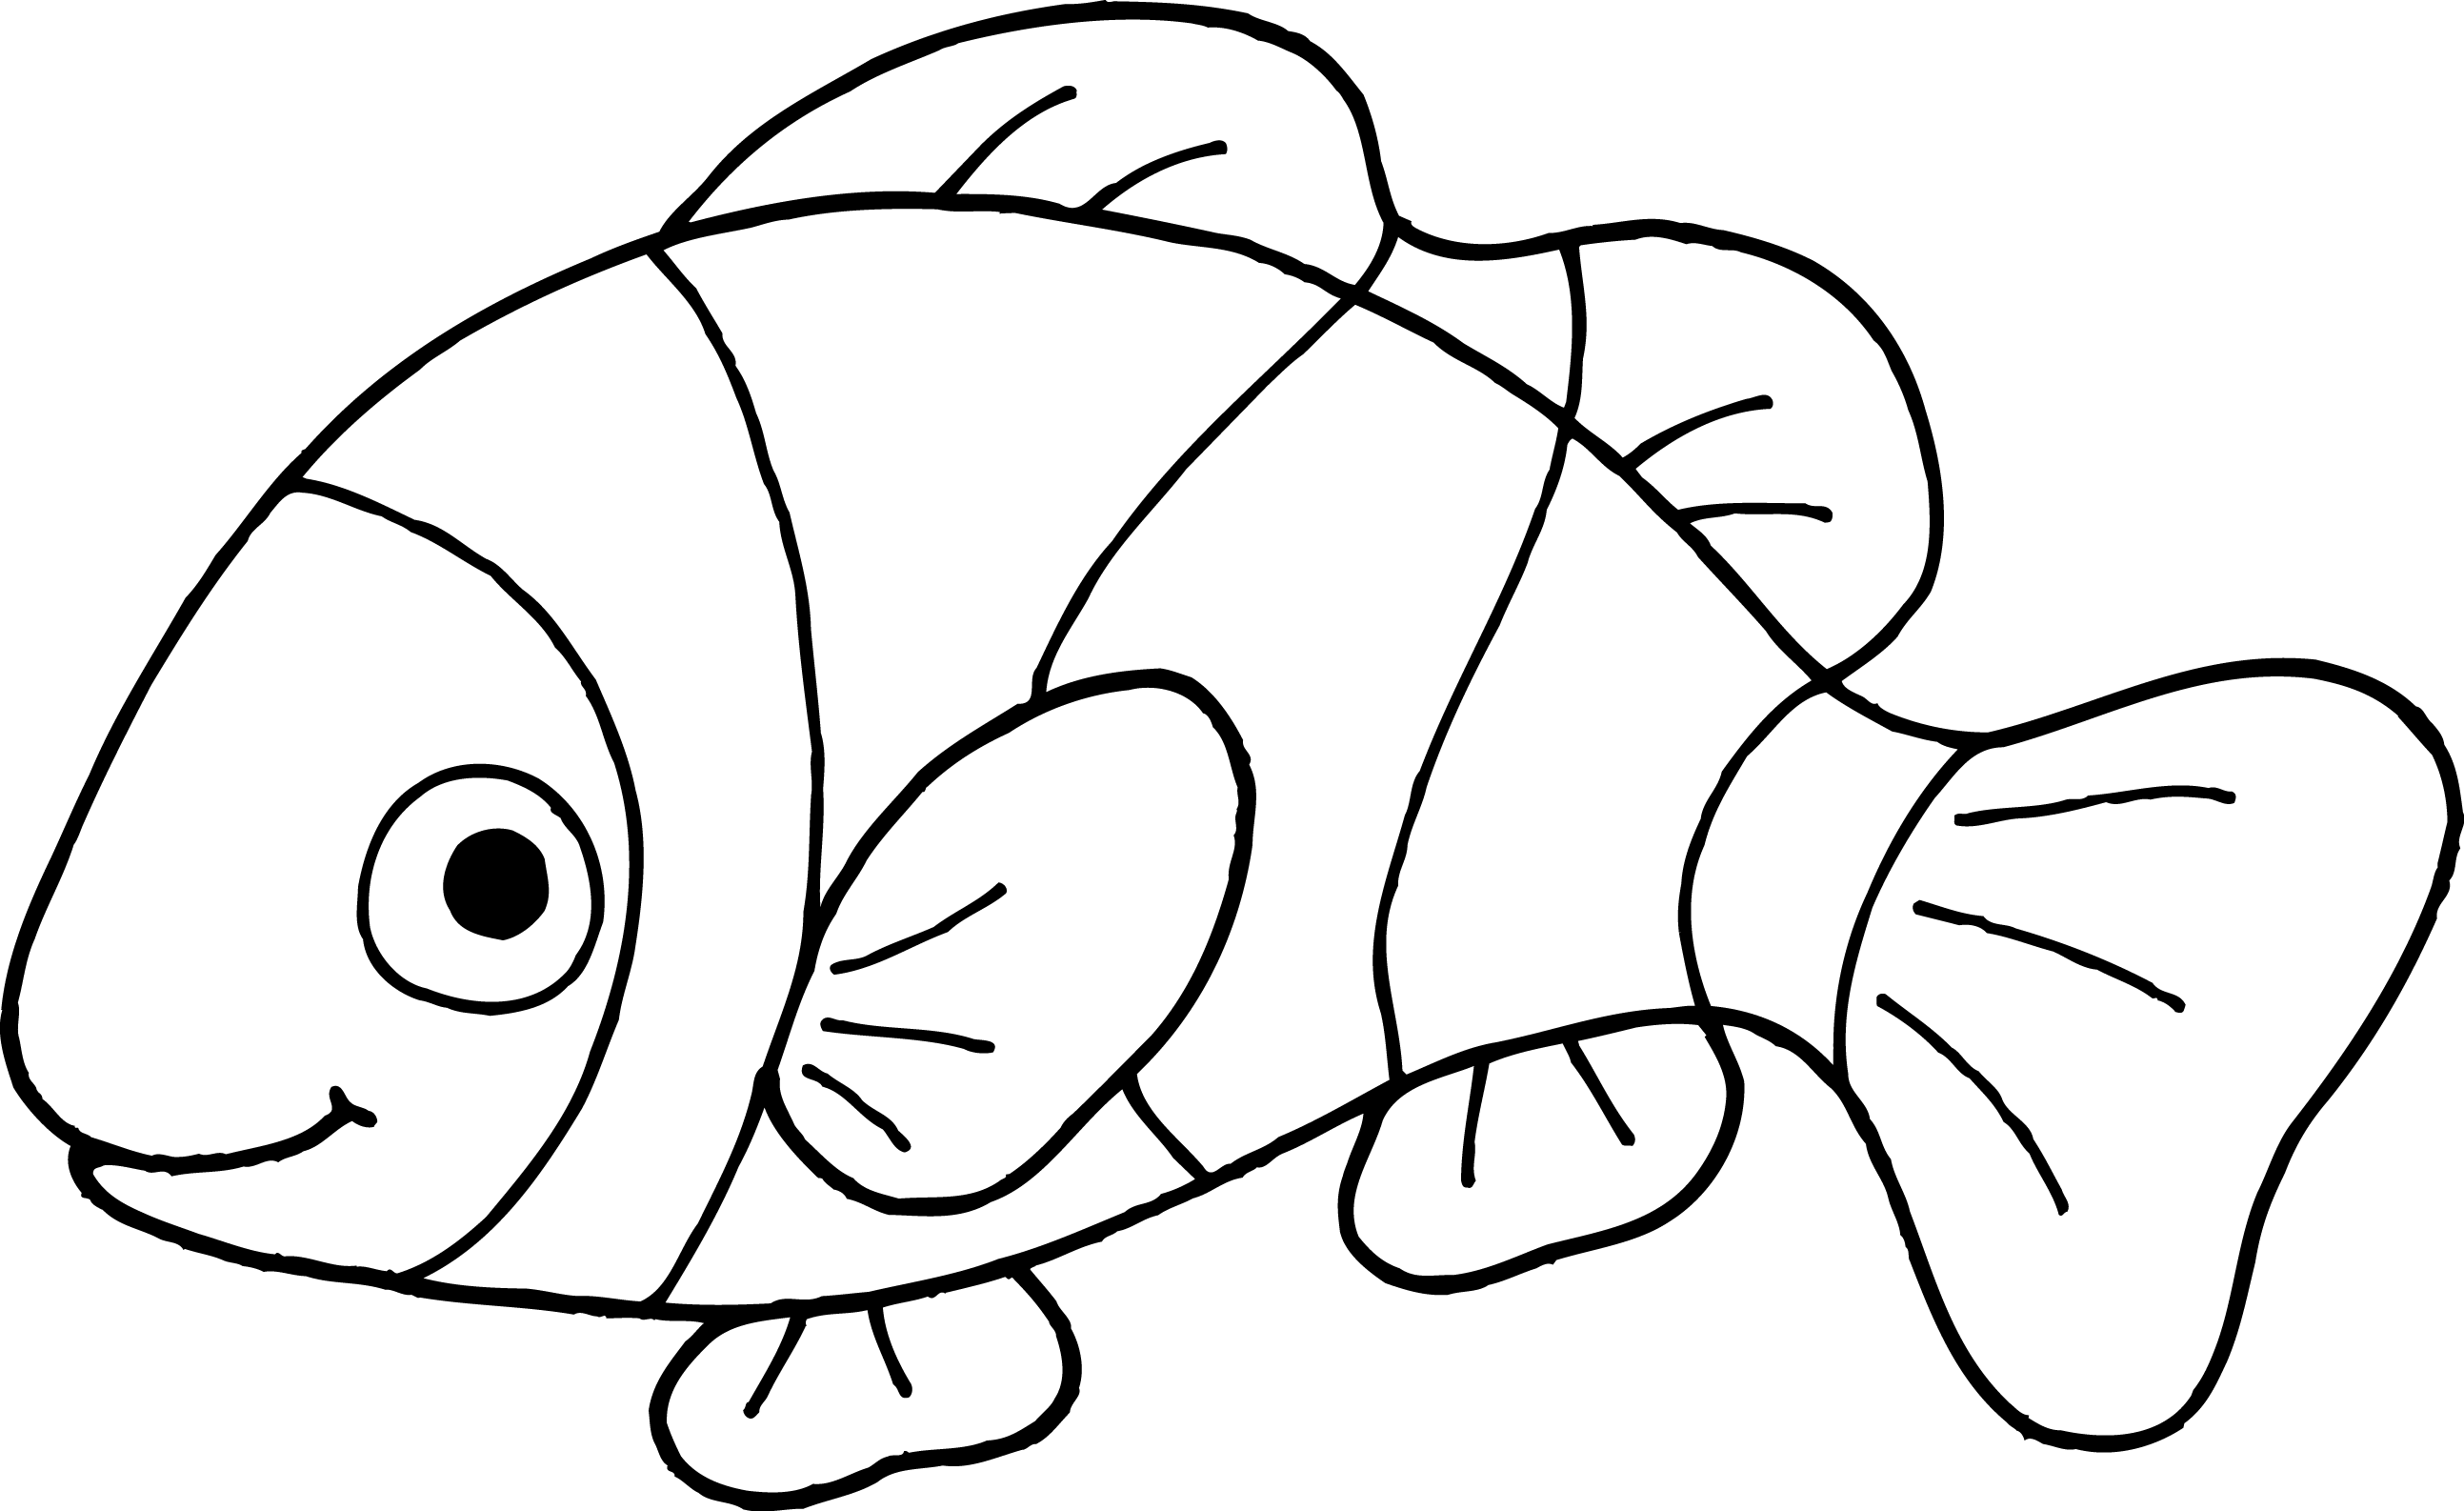 free cute black and white fish in a bowl 456136 png images pngio free cute black and white fish in a